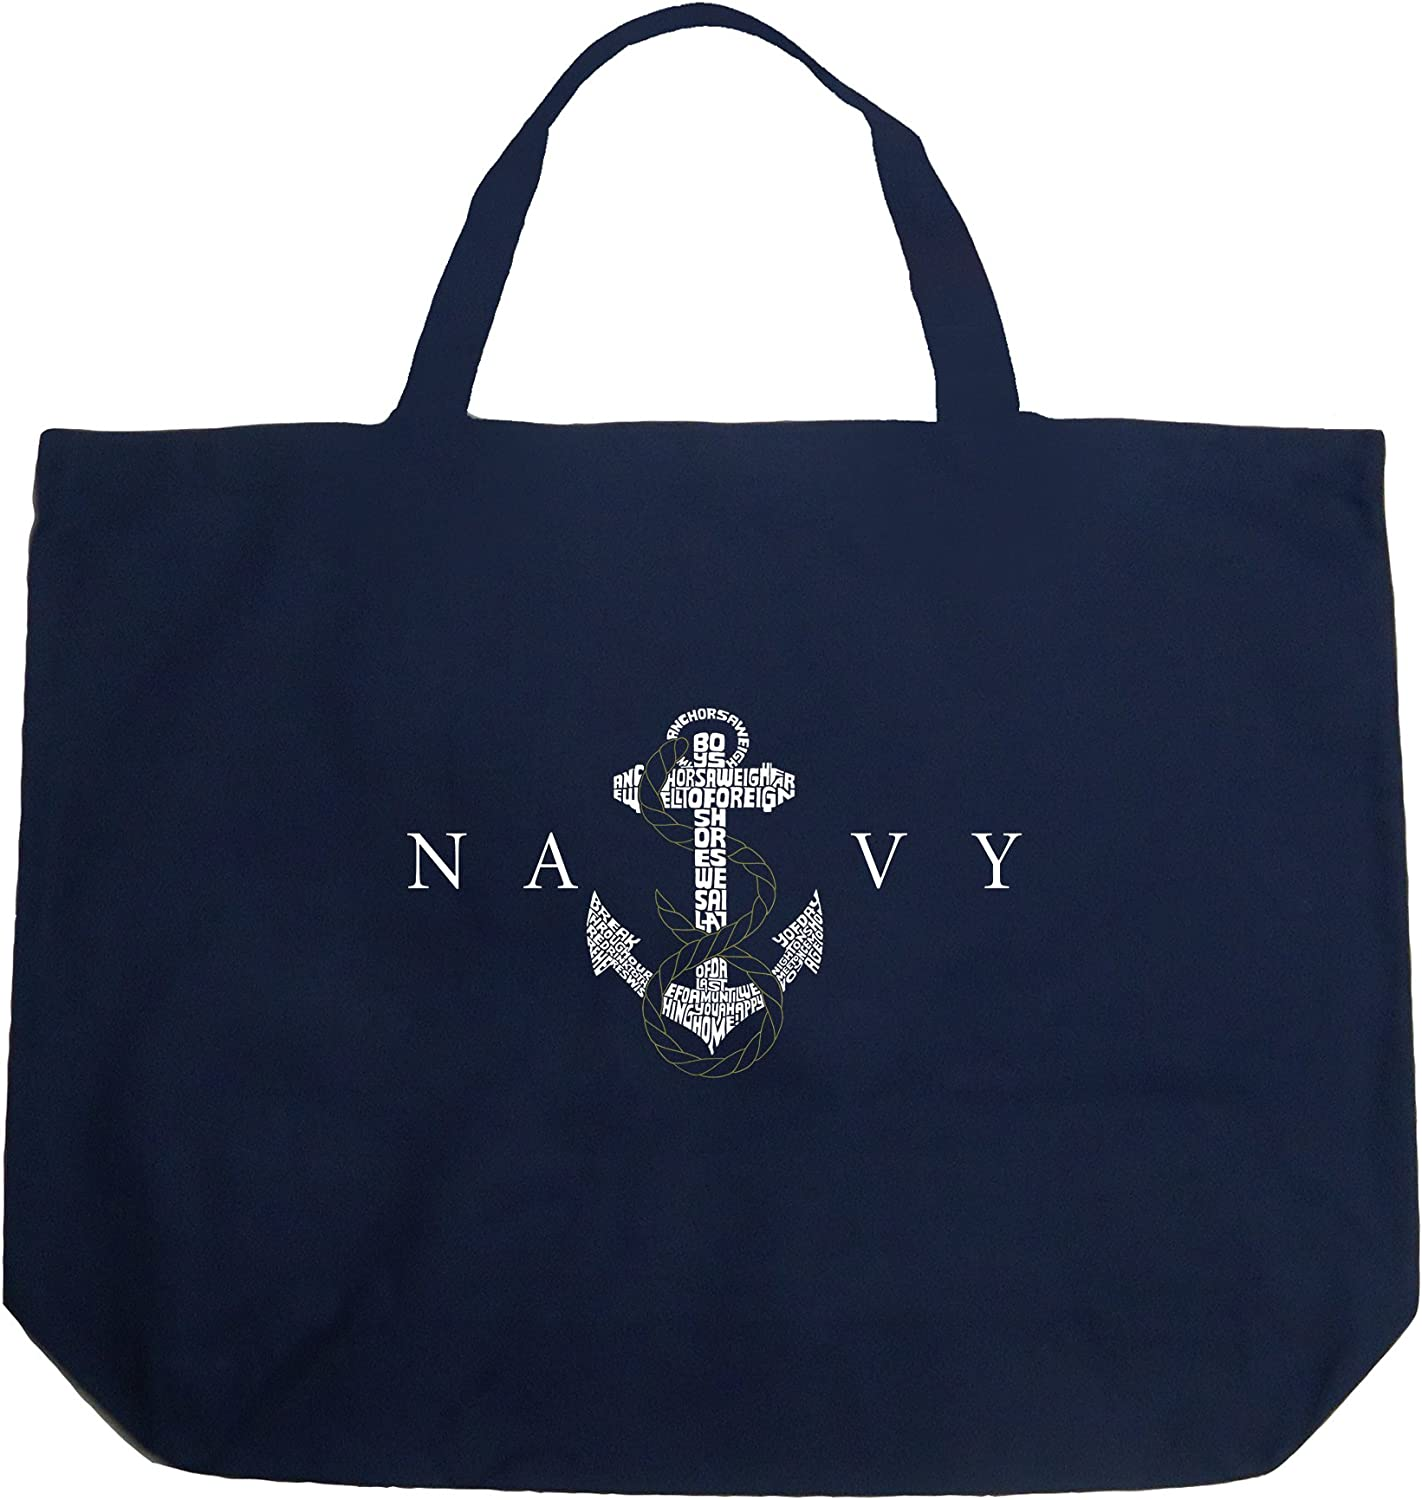 LA POP Today's only ART Word Art Large Tote Anchors Lyrics Navy Bag US - High order to